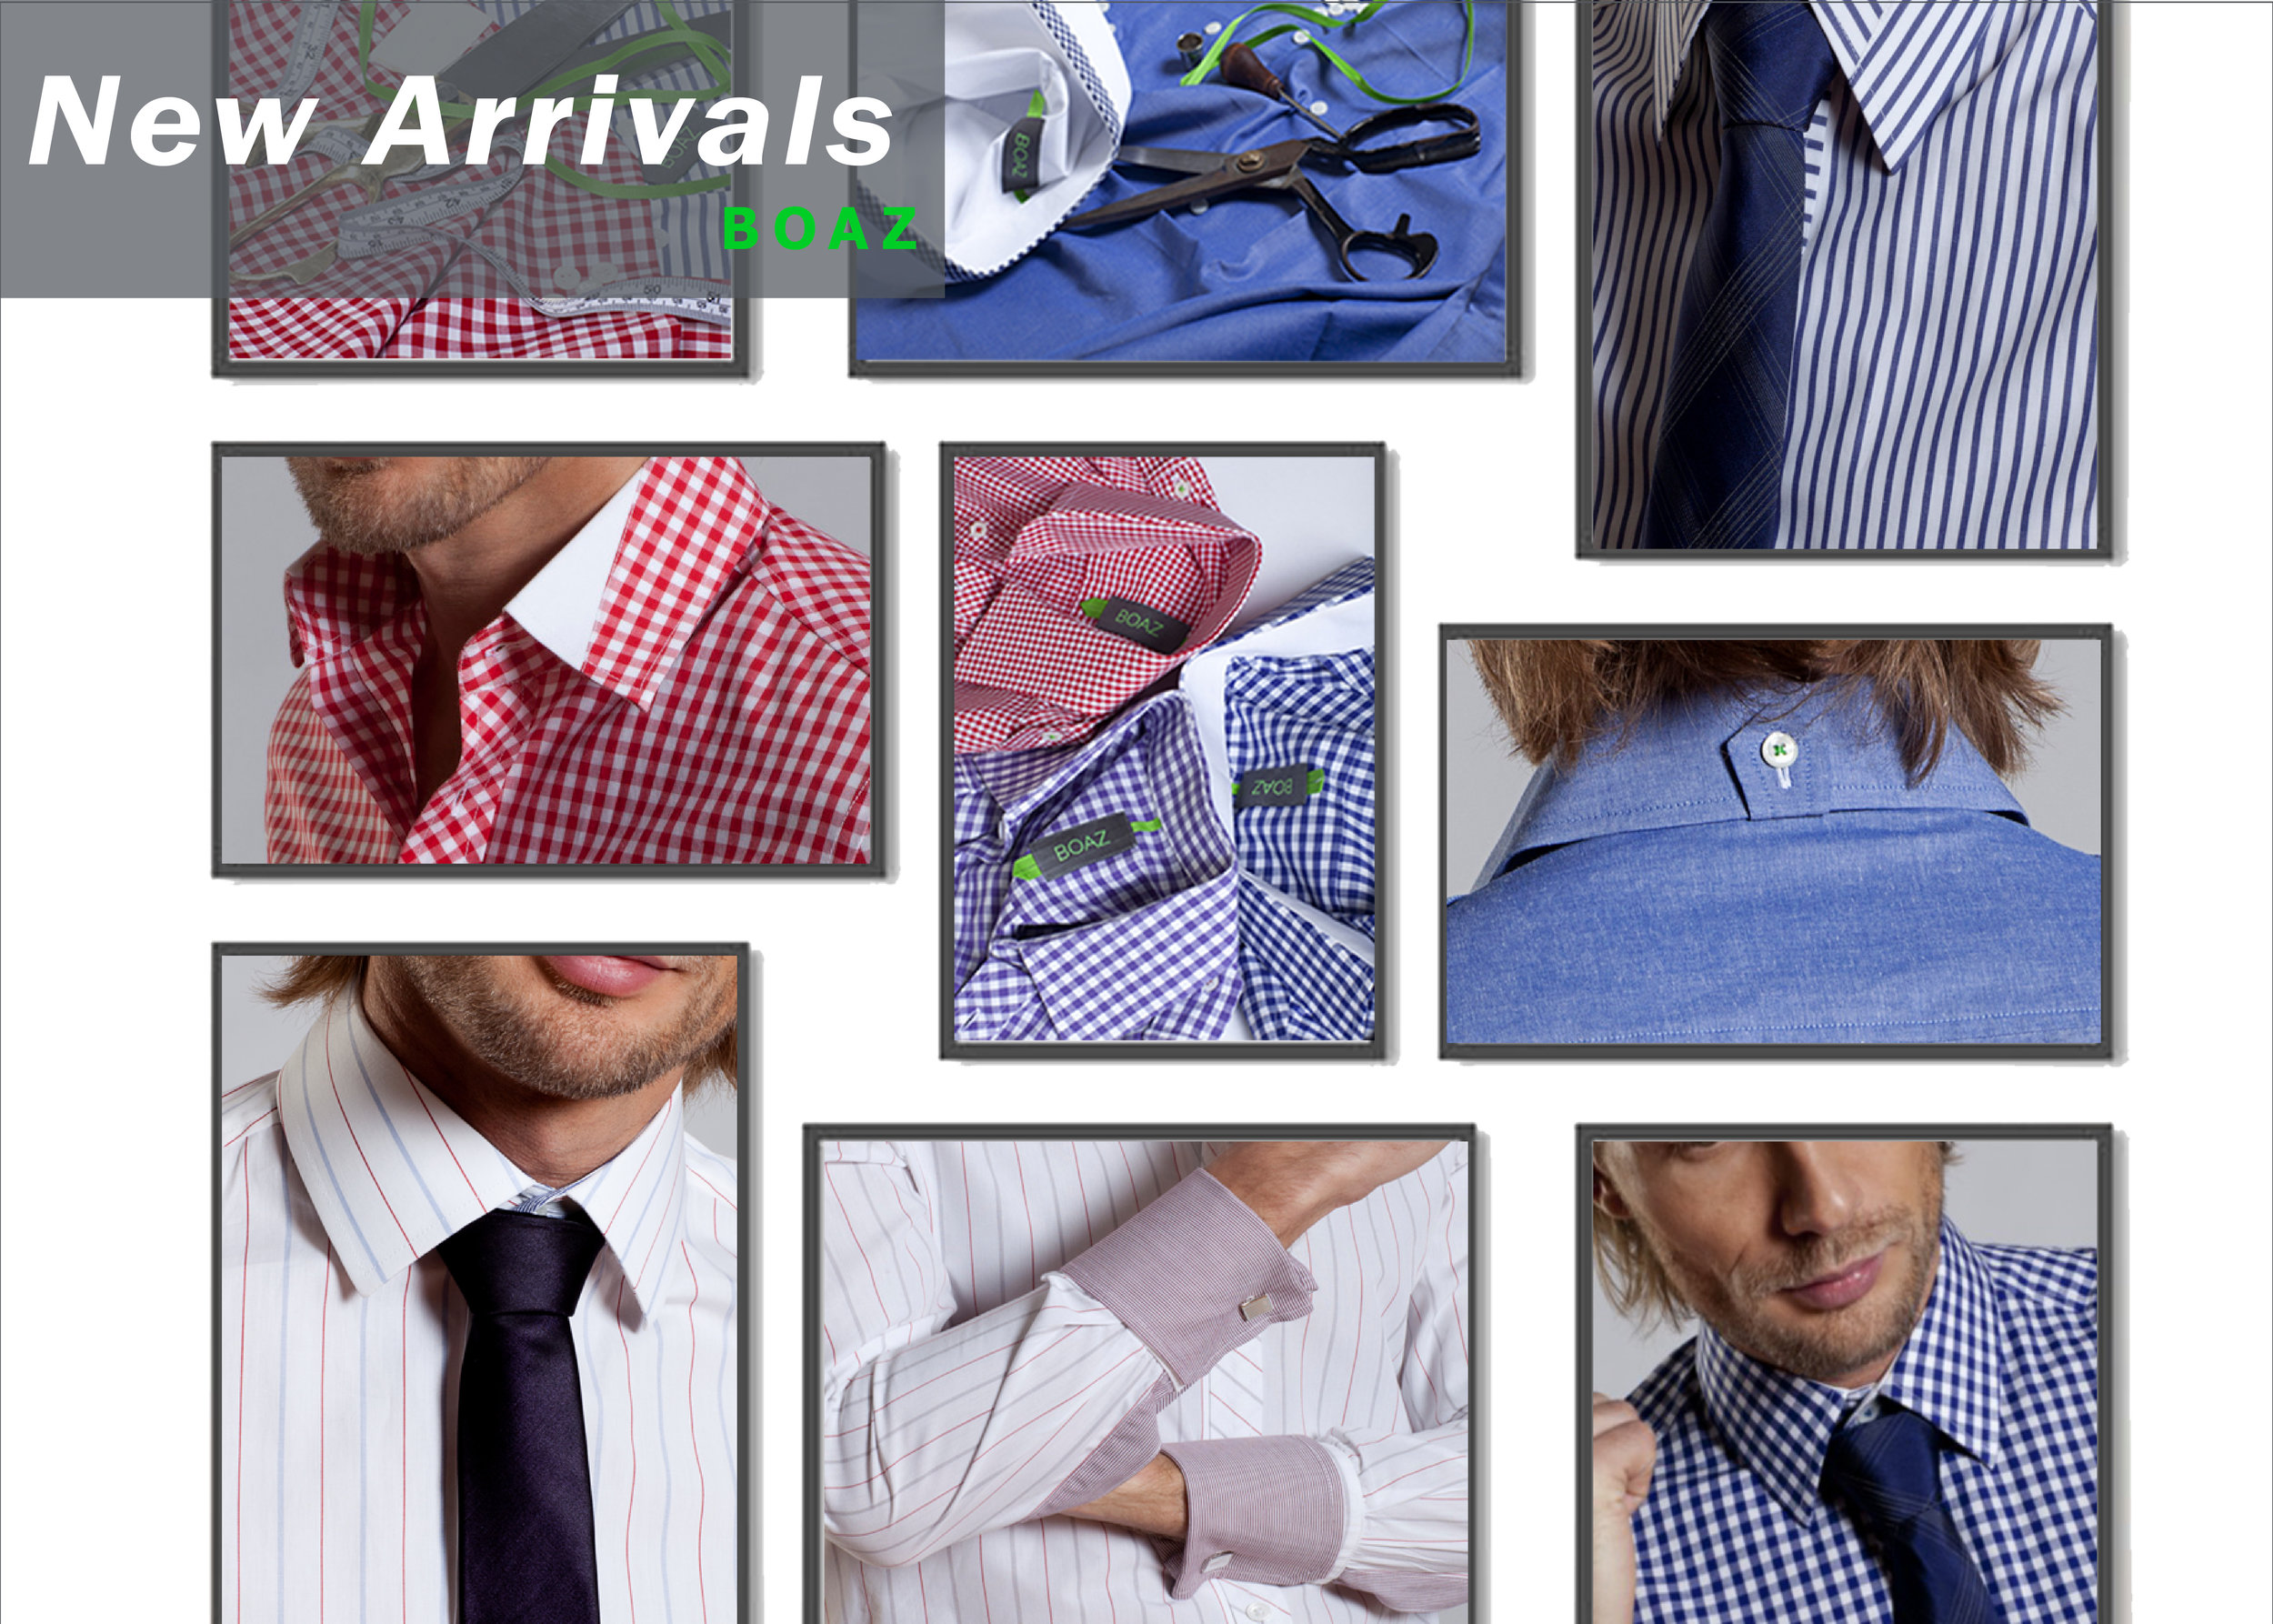 final new arrivals - the one.jpg